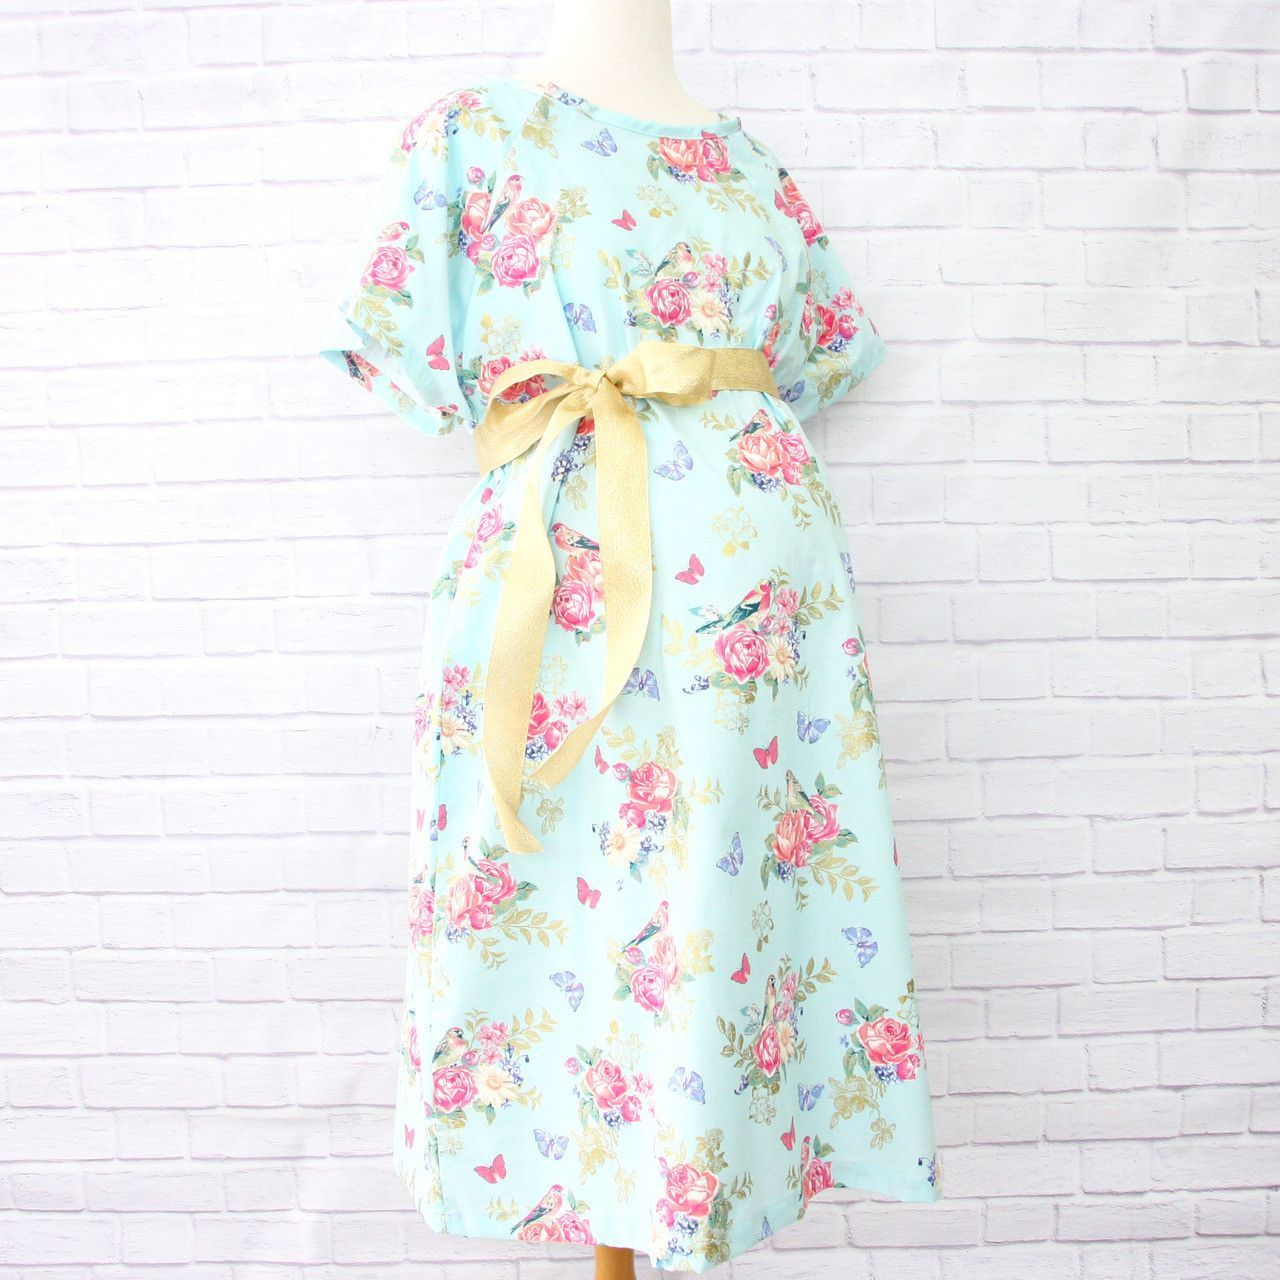 Hospital gown in emmaus blue u gold floral beautiful blue gold